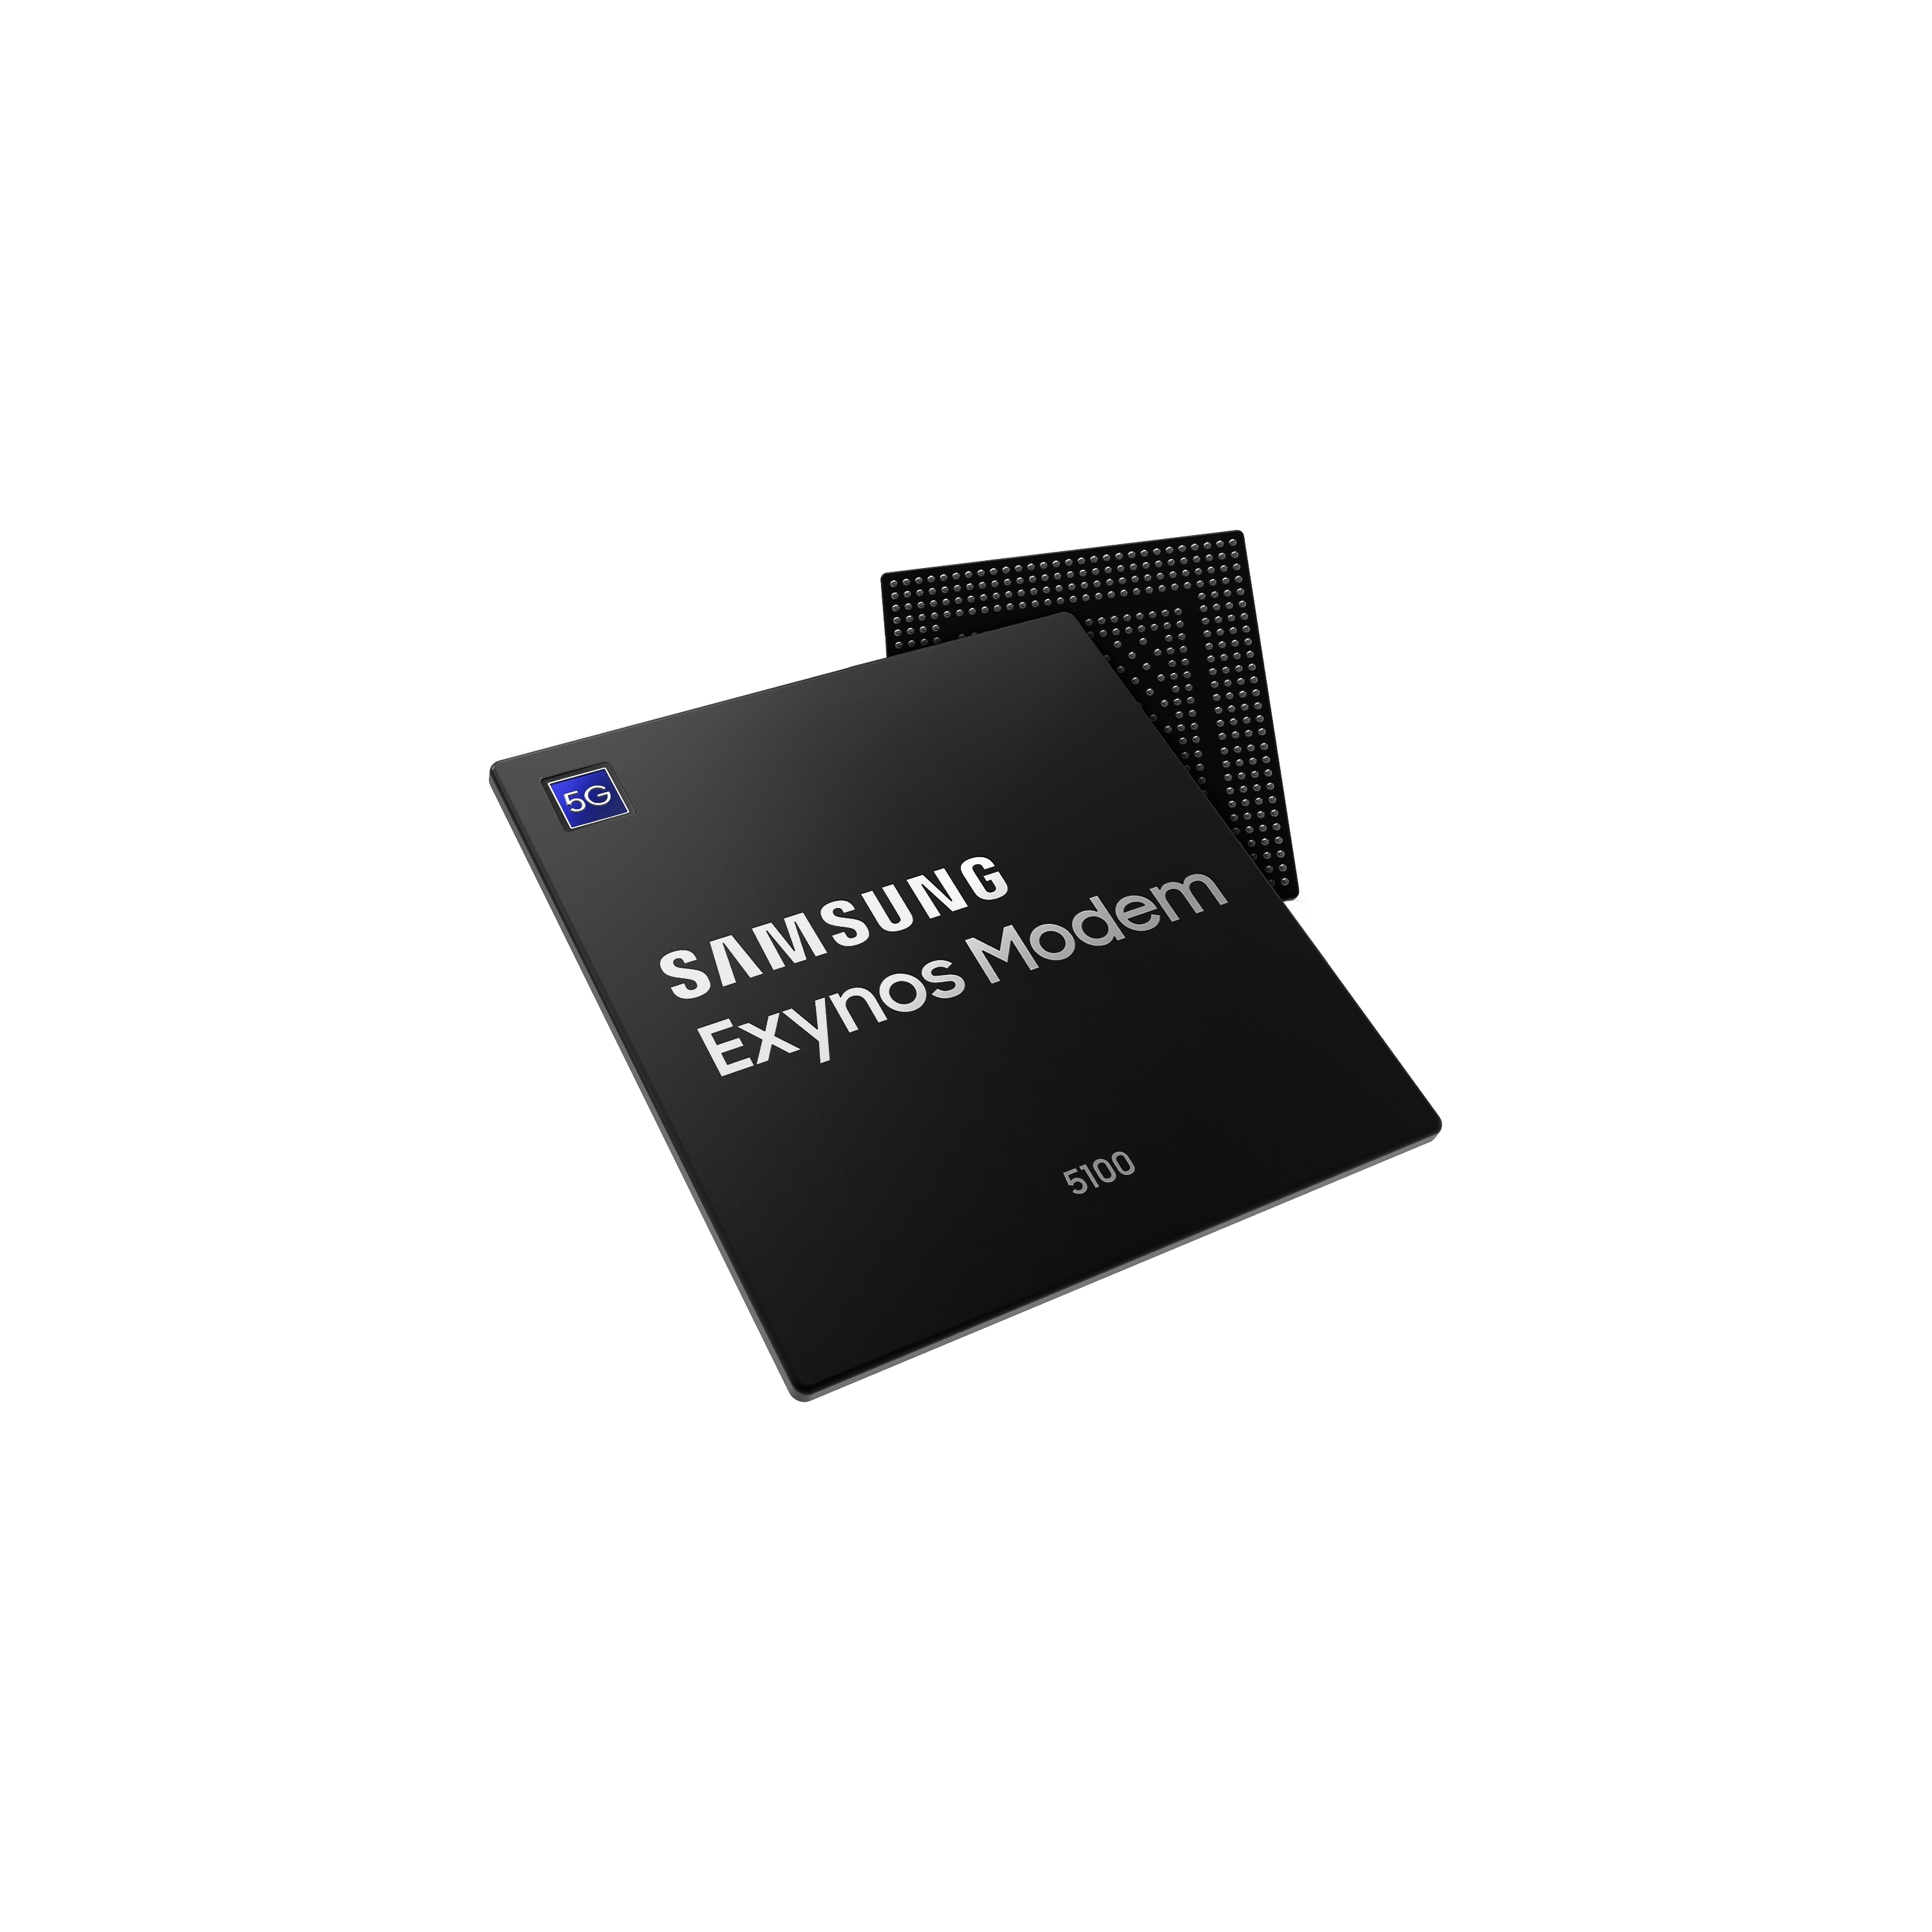 Samsung Announces Exynos Modem 5100, Industry\'s First 5G Modem Fully ...